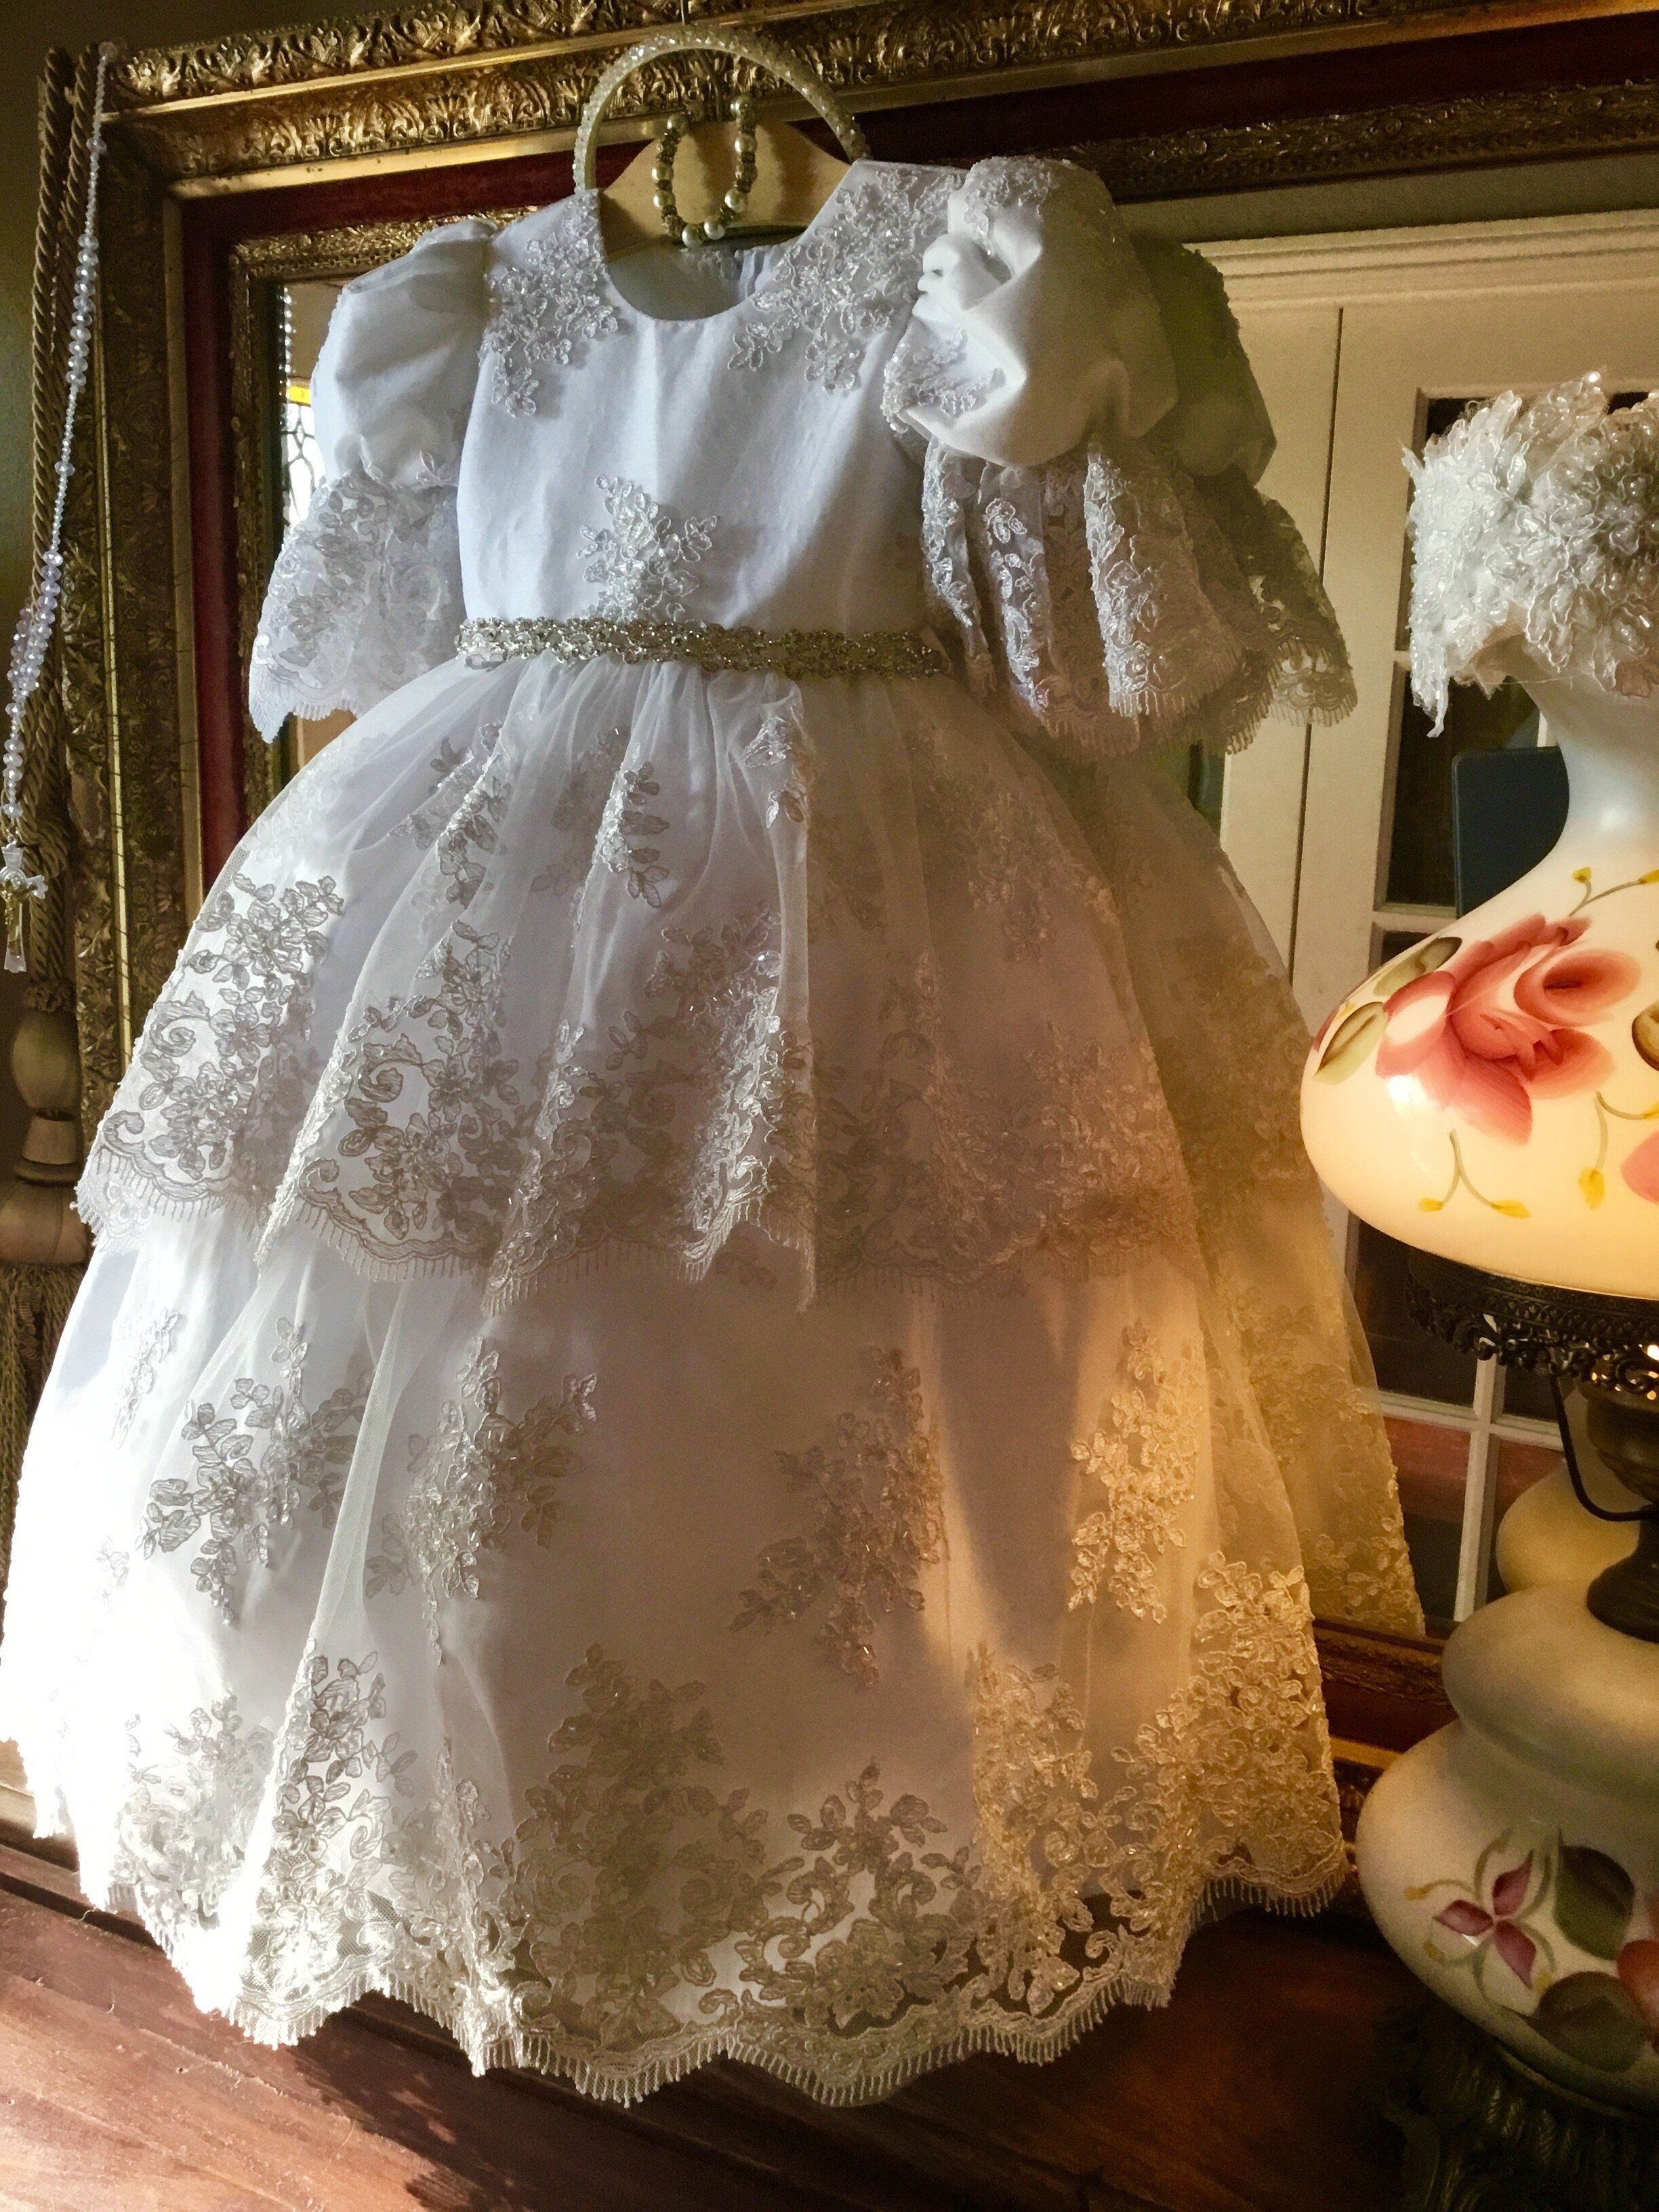 Toddler Lace Christening Dress Ivanna 3t In 2021 Baptism Dresses For Toddlers Dresses Christening Dress [ 3264 x 2448 Pixel ]